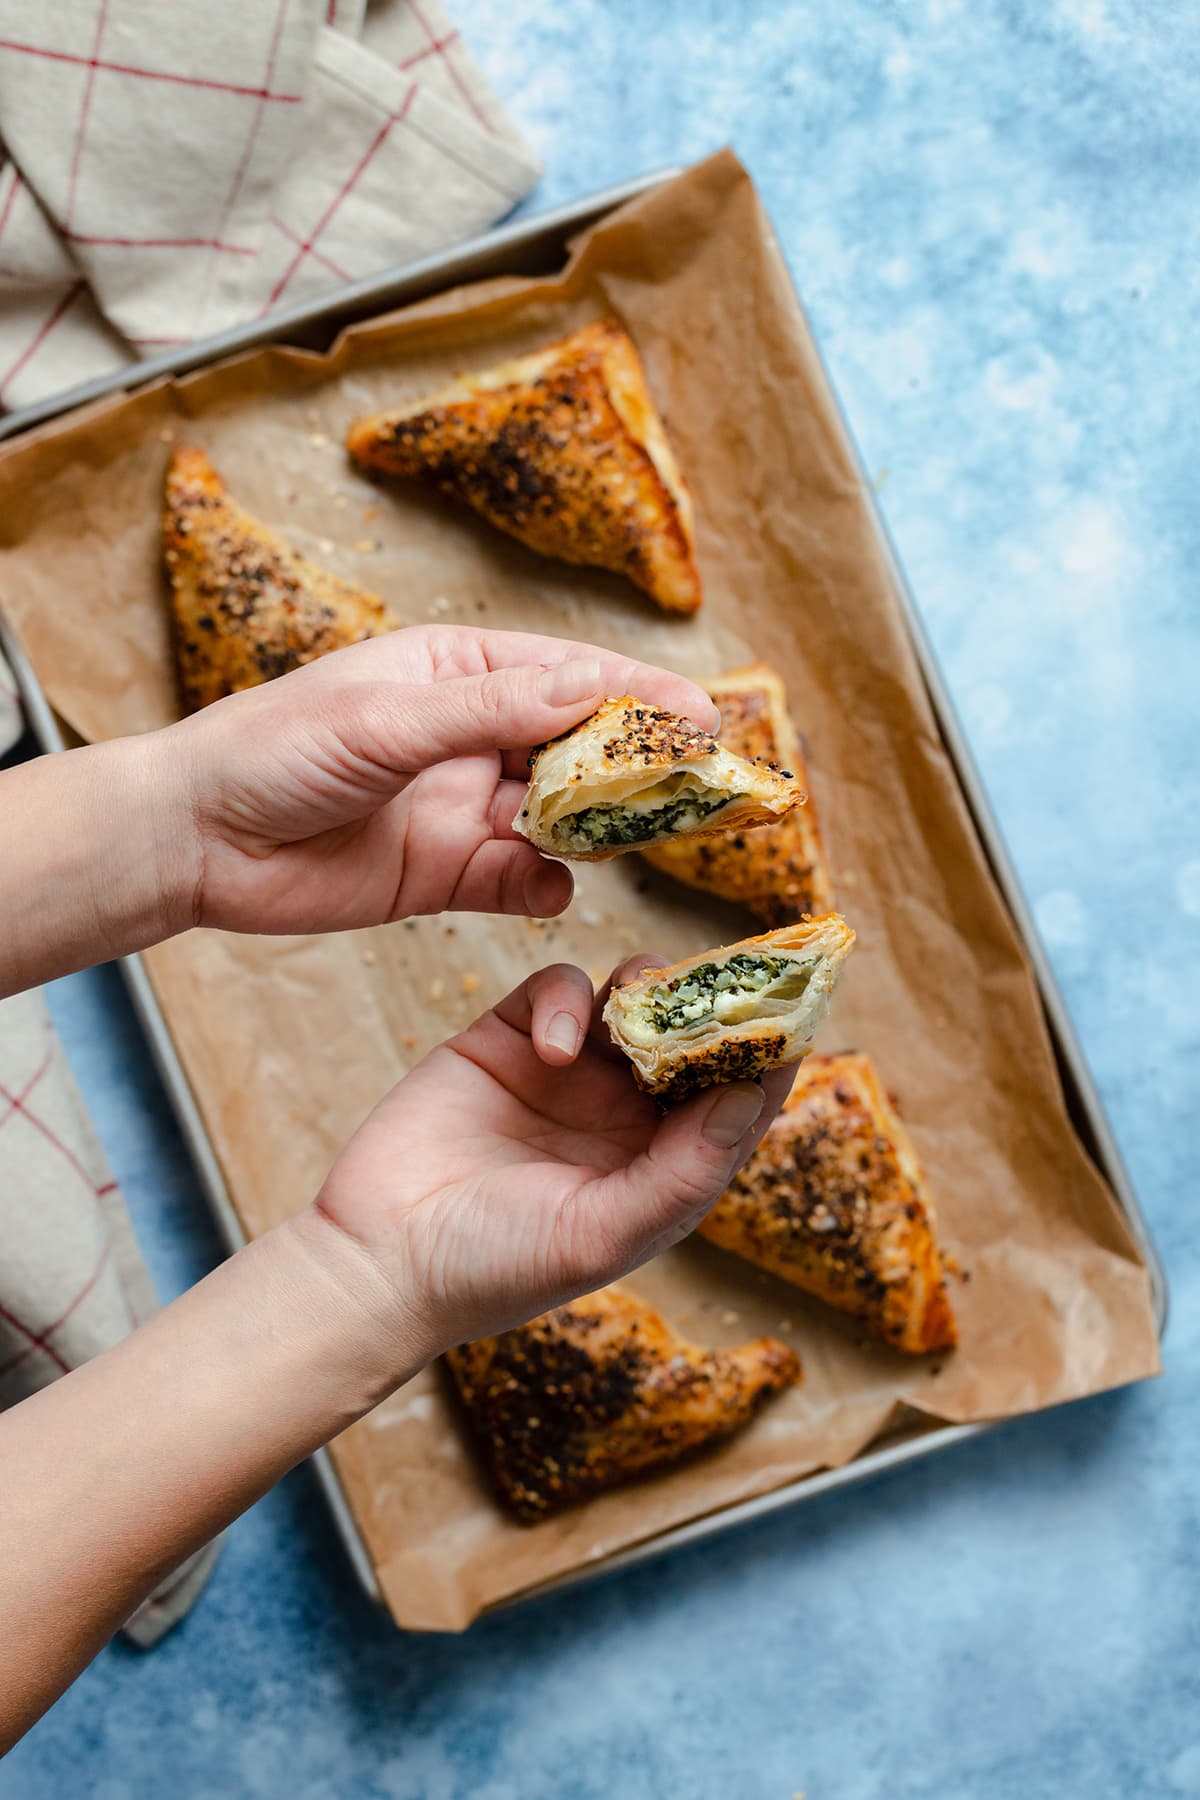 Spinach and Feta Puff Pastry Triangles on a baking sheet lined with parchment paper. Hands holding one triangle cut in half.